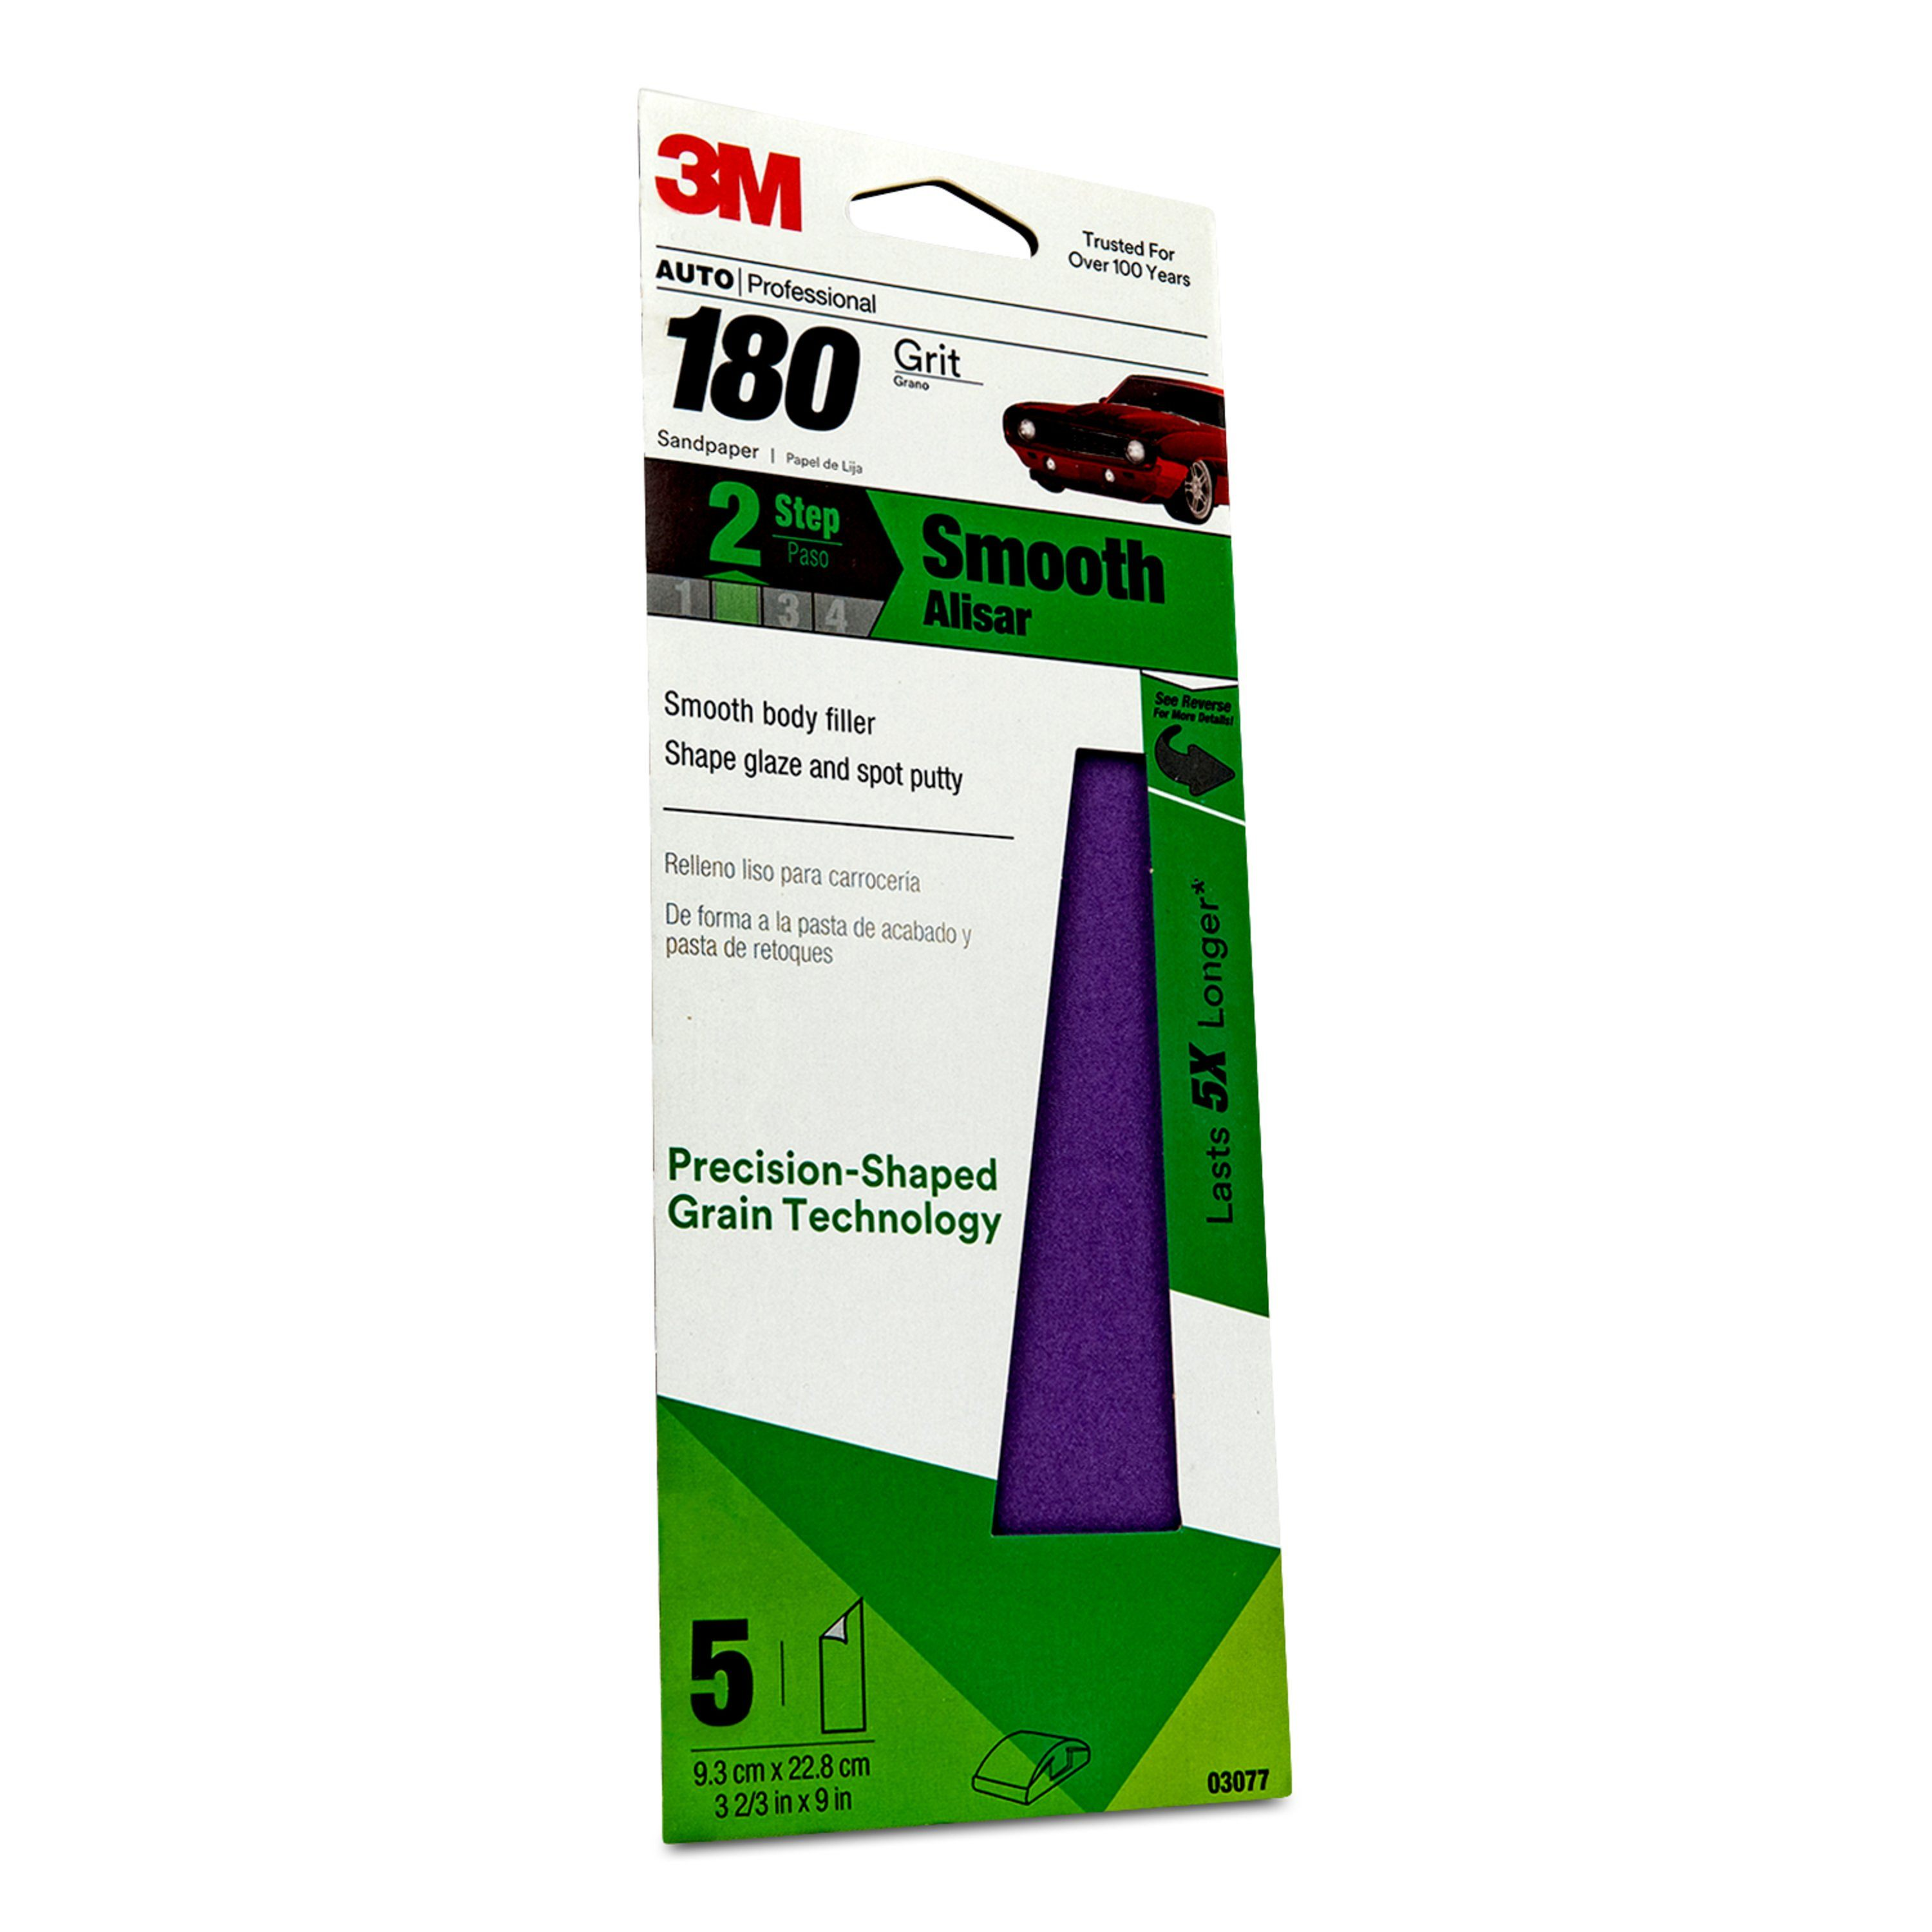 3M Automotive Performance Sandpaper, 03077, 180 Grit, 3 2/3 in x 9 in